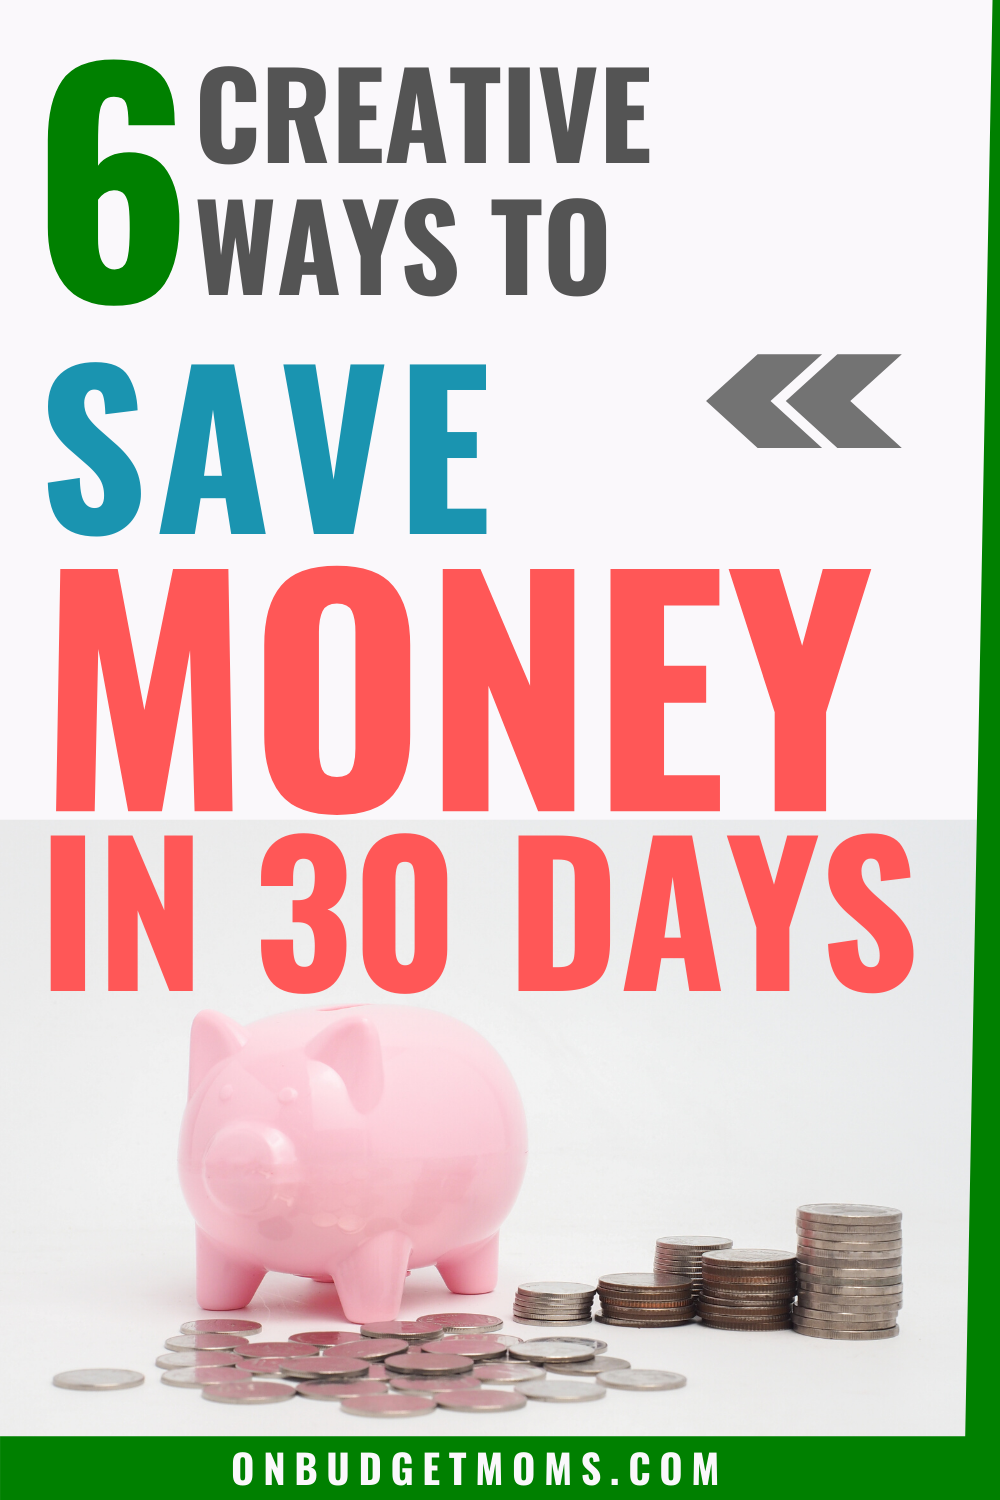 Saving money in a short amount of time is possible even if you are on a tight budget. The trick is to make more money that isn't already included in your budget. This money can then be used for your savings! #savemoney #moneysavers #howtosavemoney #savingtips